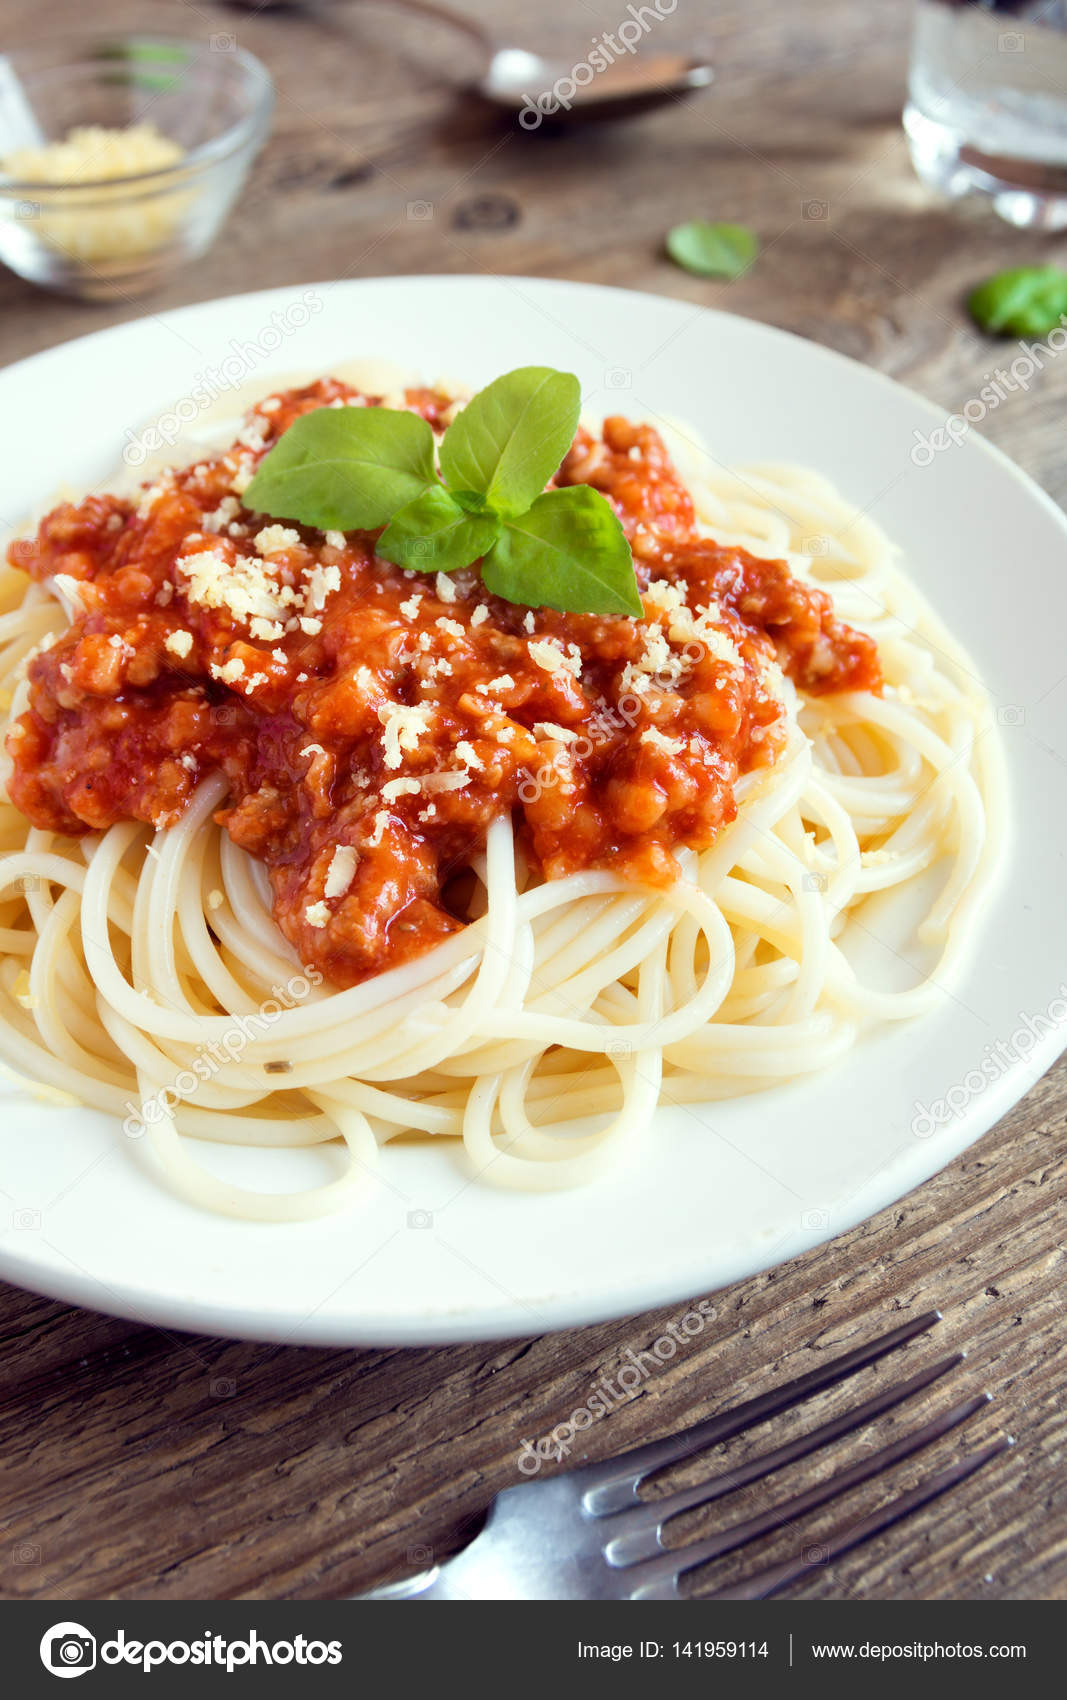 Spaghetti Bolognese Pasta Tomato Sauce Minced Meat Grated Parmesan Cheese Stock Photo Image By C Mizina 141959114